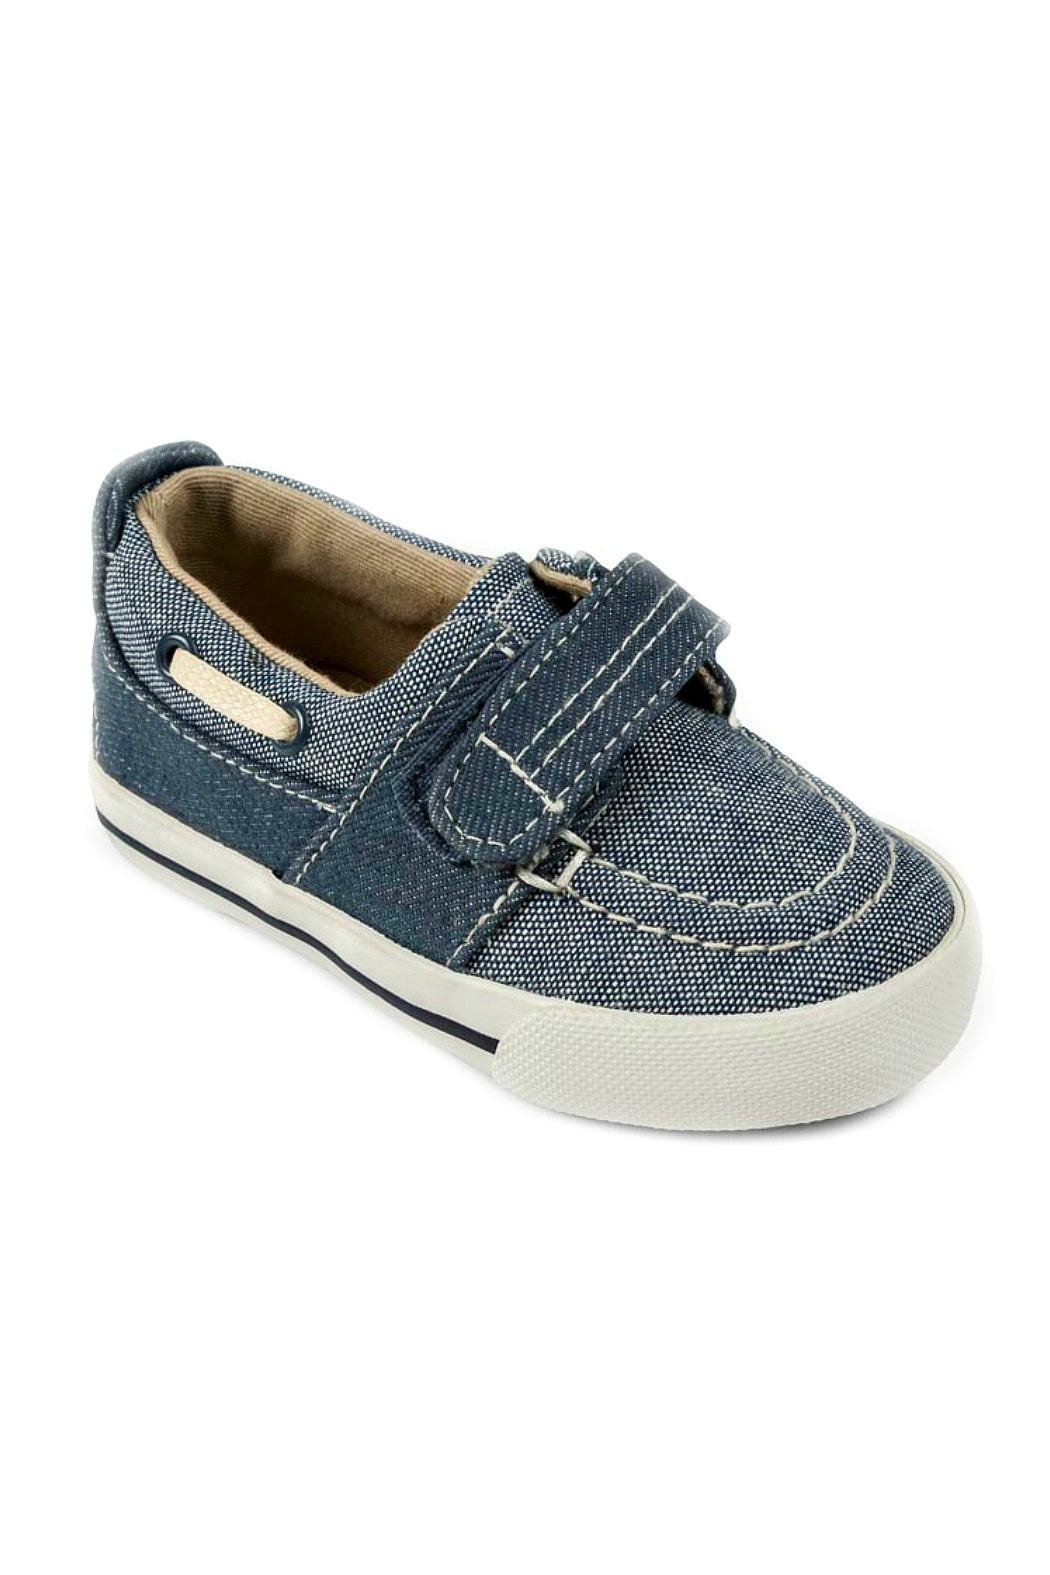 Mayoral Boys Nautical Denim-Boat-Shoes - Main Image